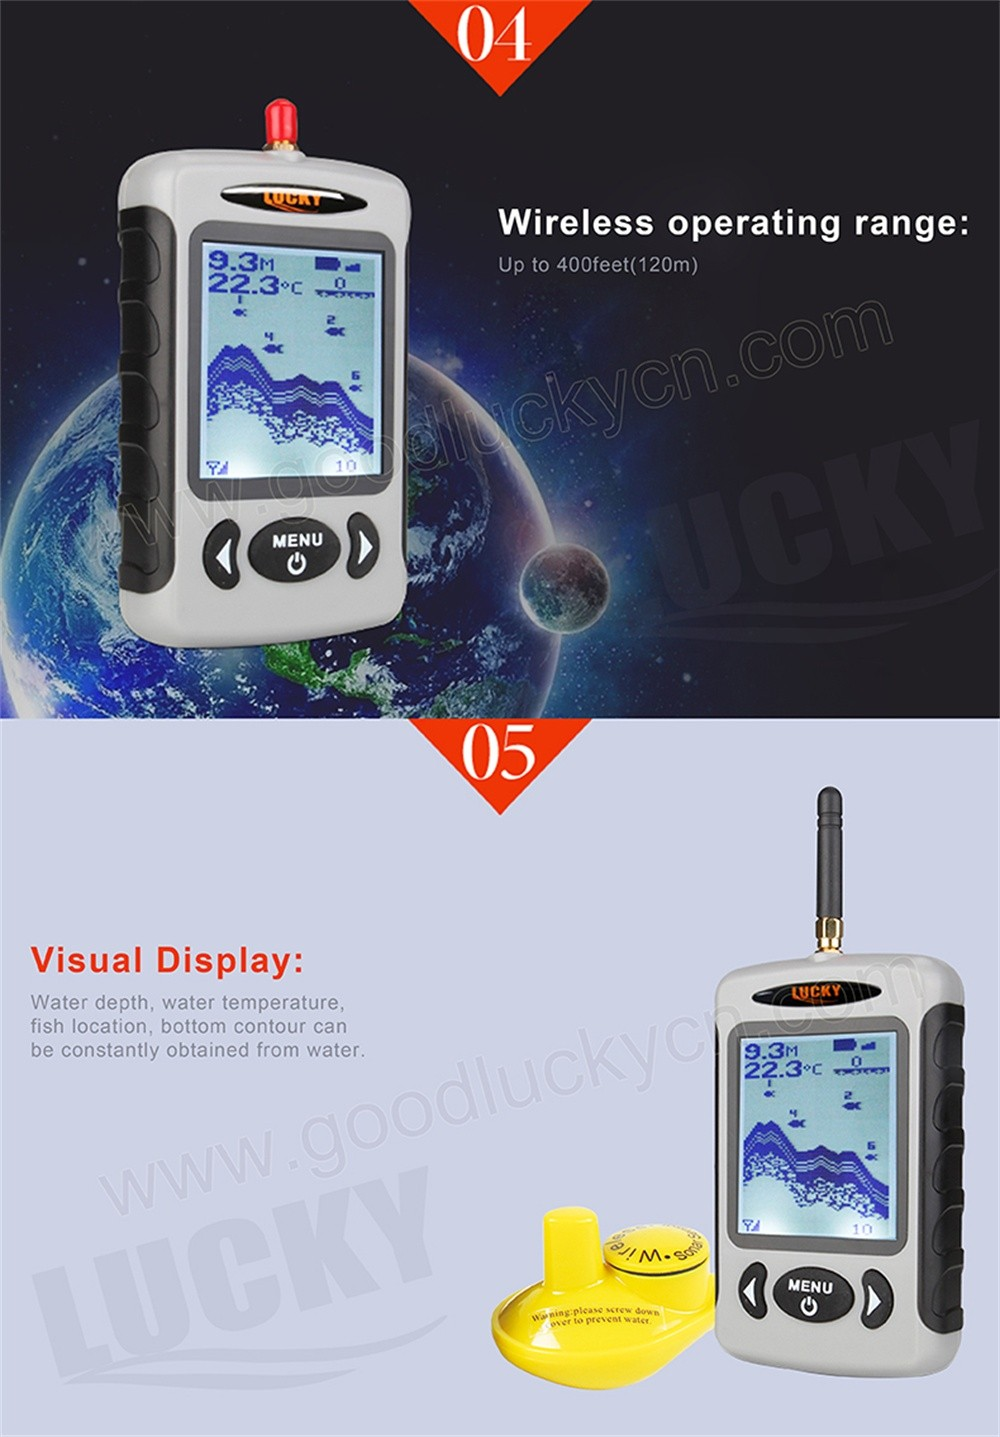 Lucky FFW718 Wireless Portable Fish Finder 45M/135FT Sonar Depth Sounder Alarm Ocean River Lake